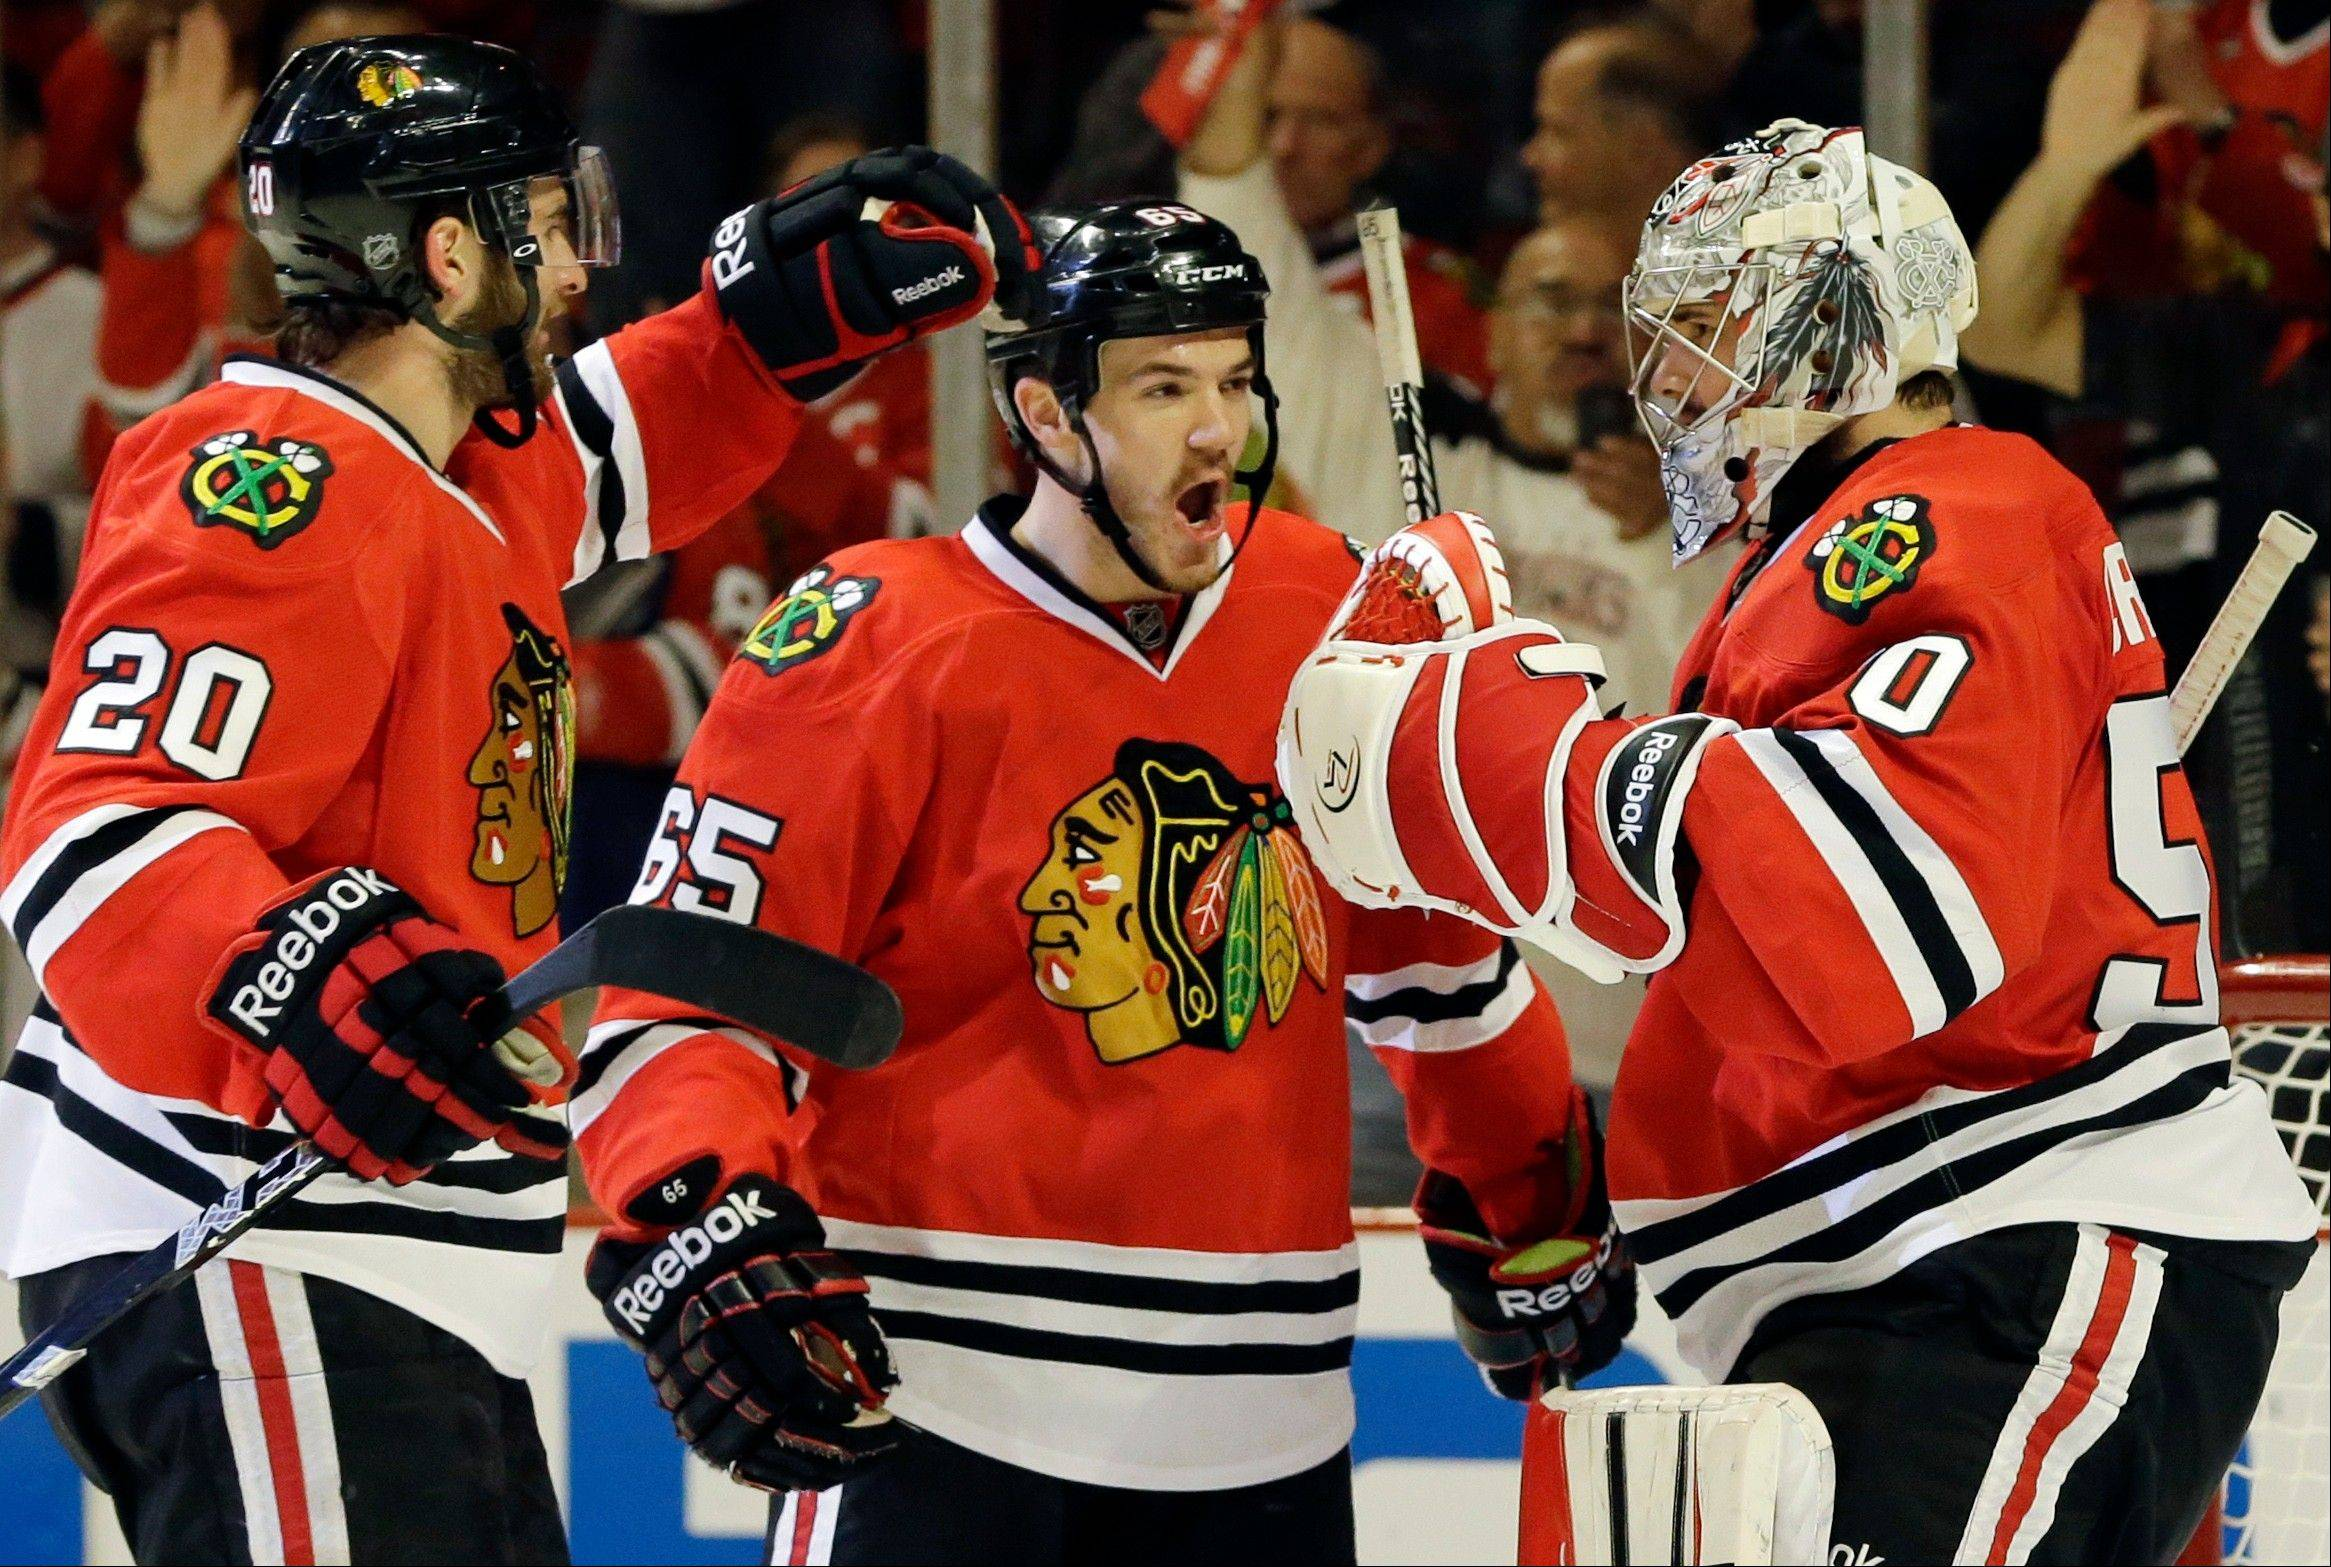 Chicago Blackhawks goalie Corey Crawford, right, celebrates with teammates Andrew Shaw, center, and Brandon Saad after they defeated the Detroit Red Wings 4-1 in Game 5 of the NHL hockey Stanley Cup playoffs Western Conference semifinals in Chicago, Saturday, May 25, 2013.